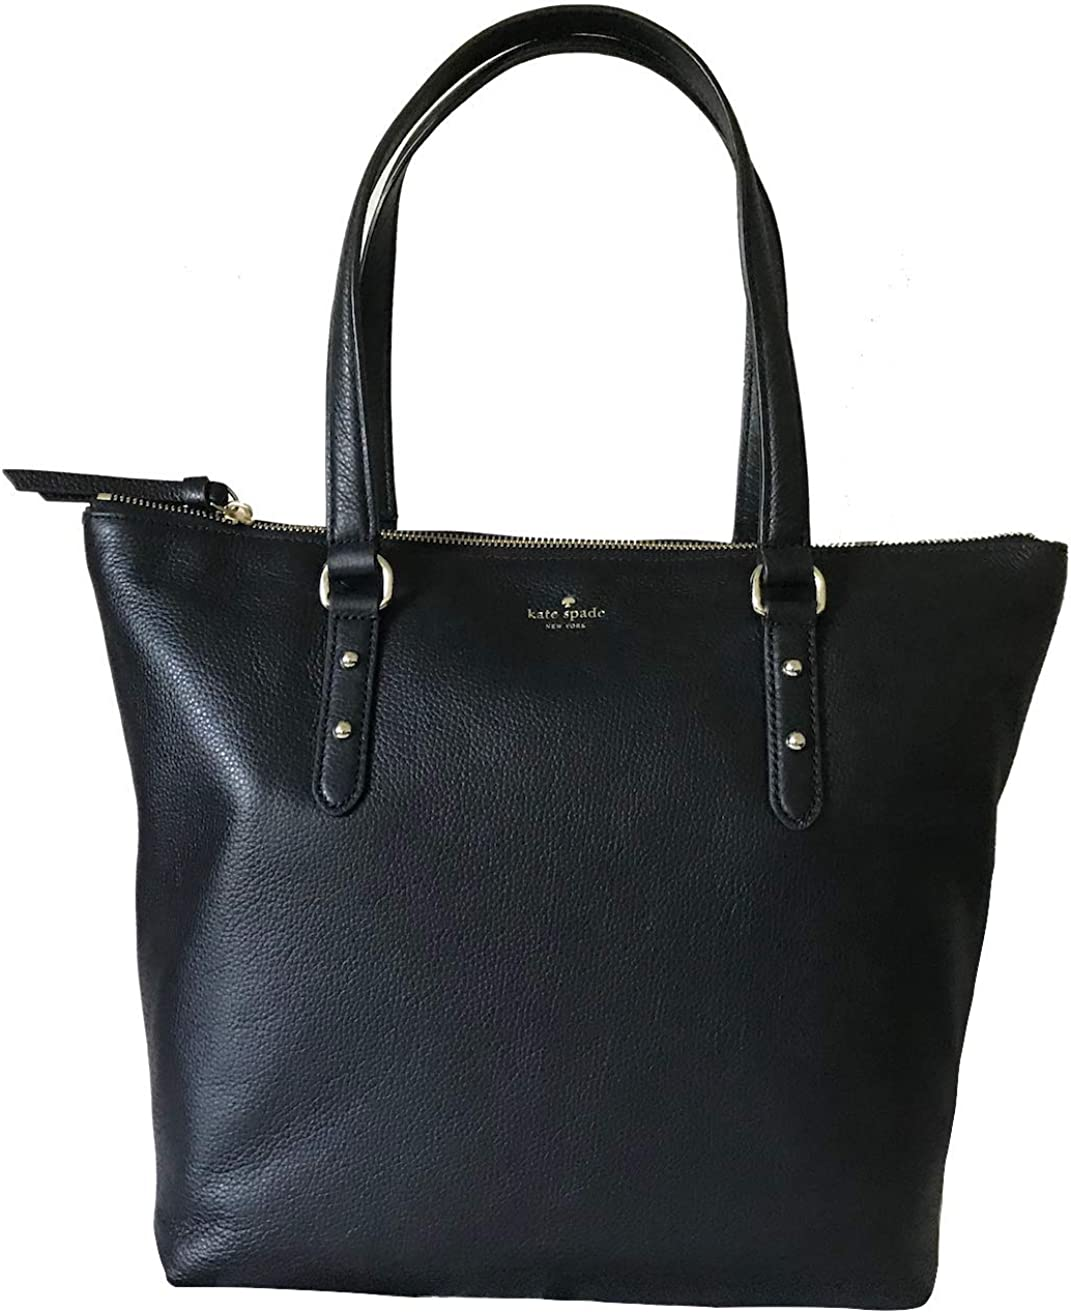 Kate Spade New York Larchmont Avenue Tote